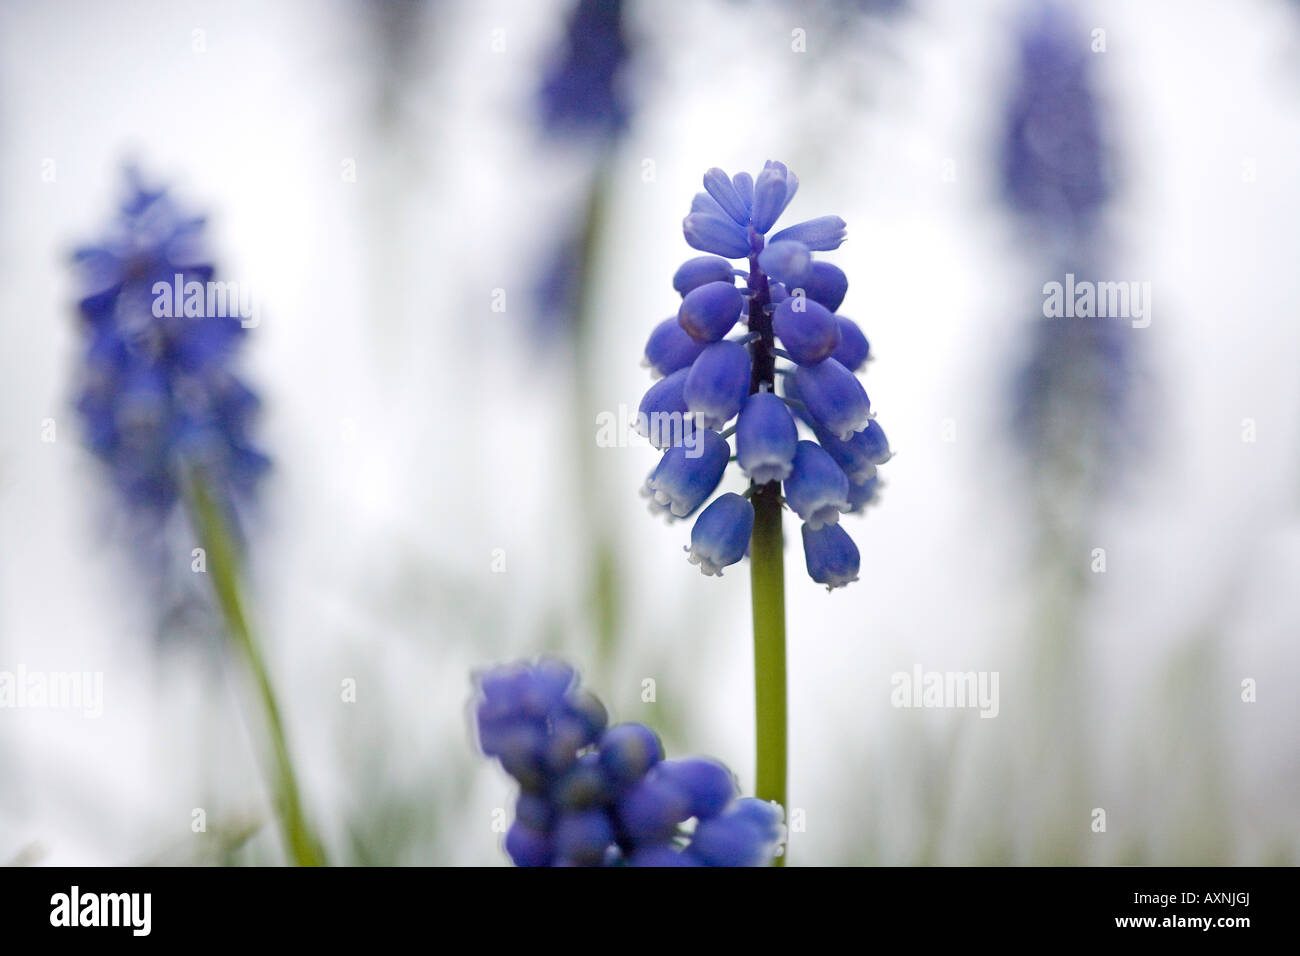 Muscari Armeniacum, grape hyacinth growing in snow - Stock Image